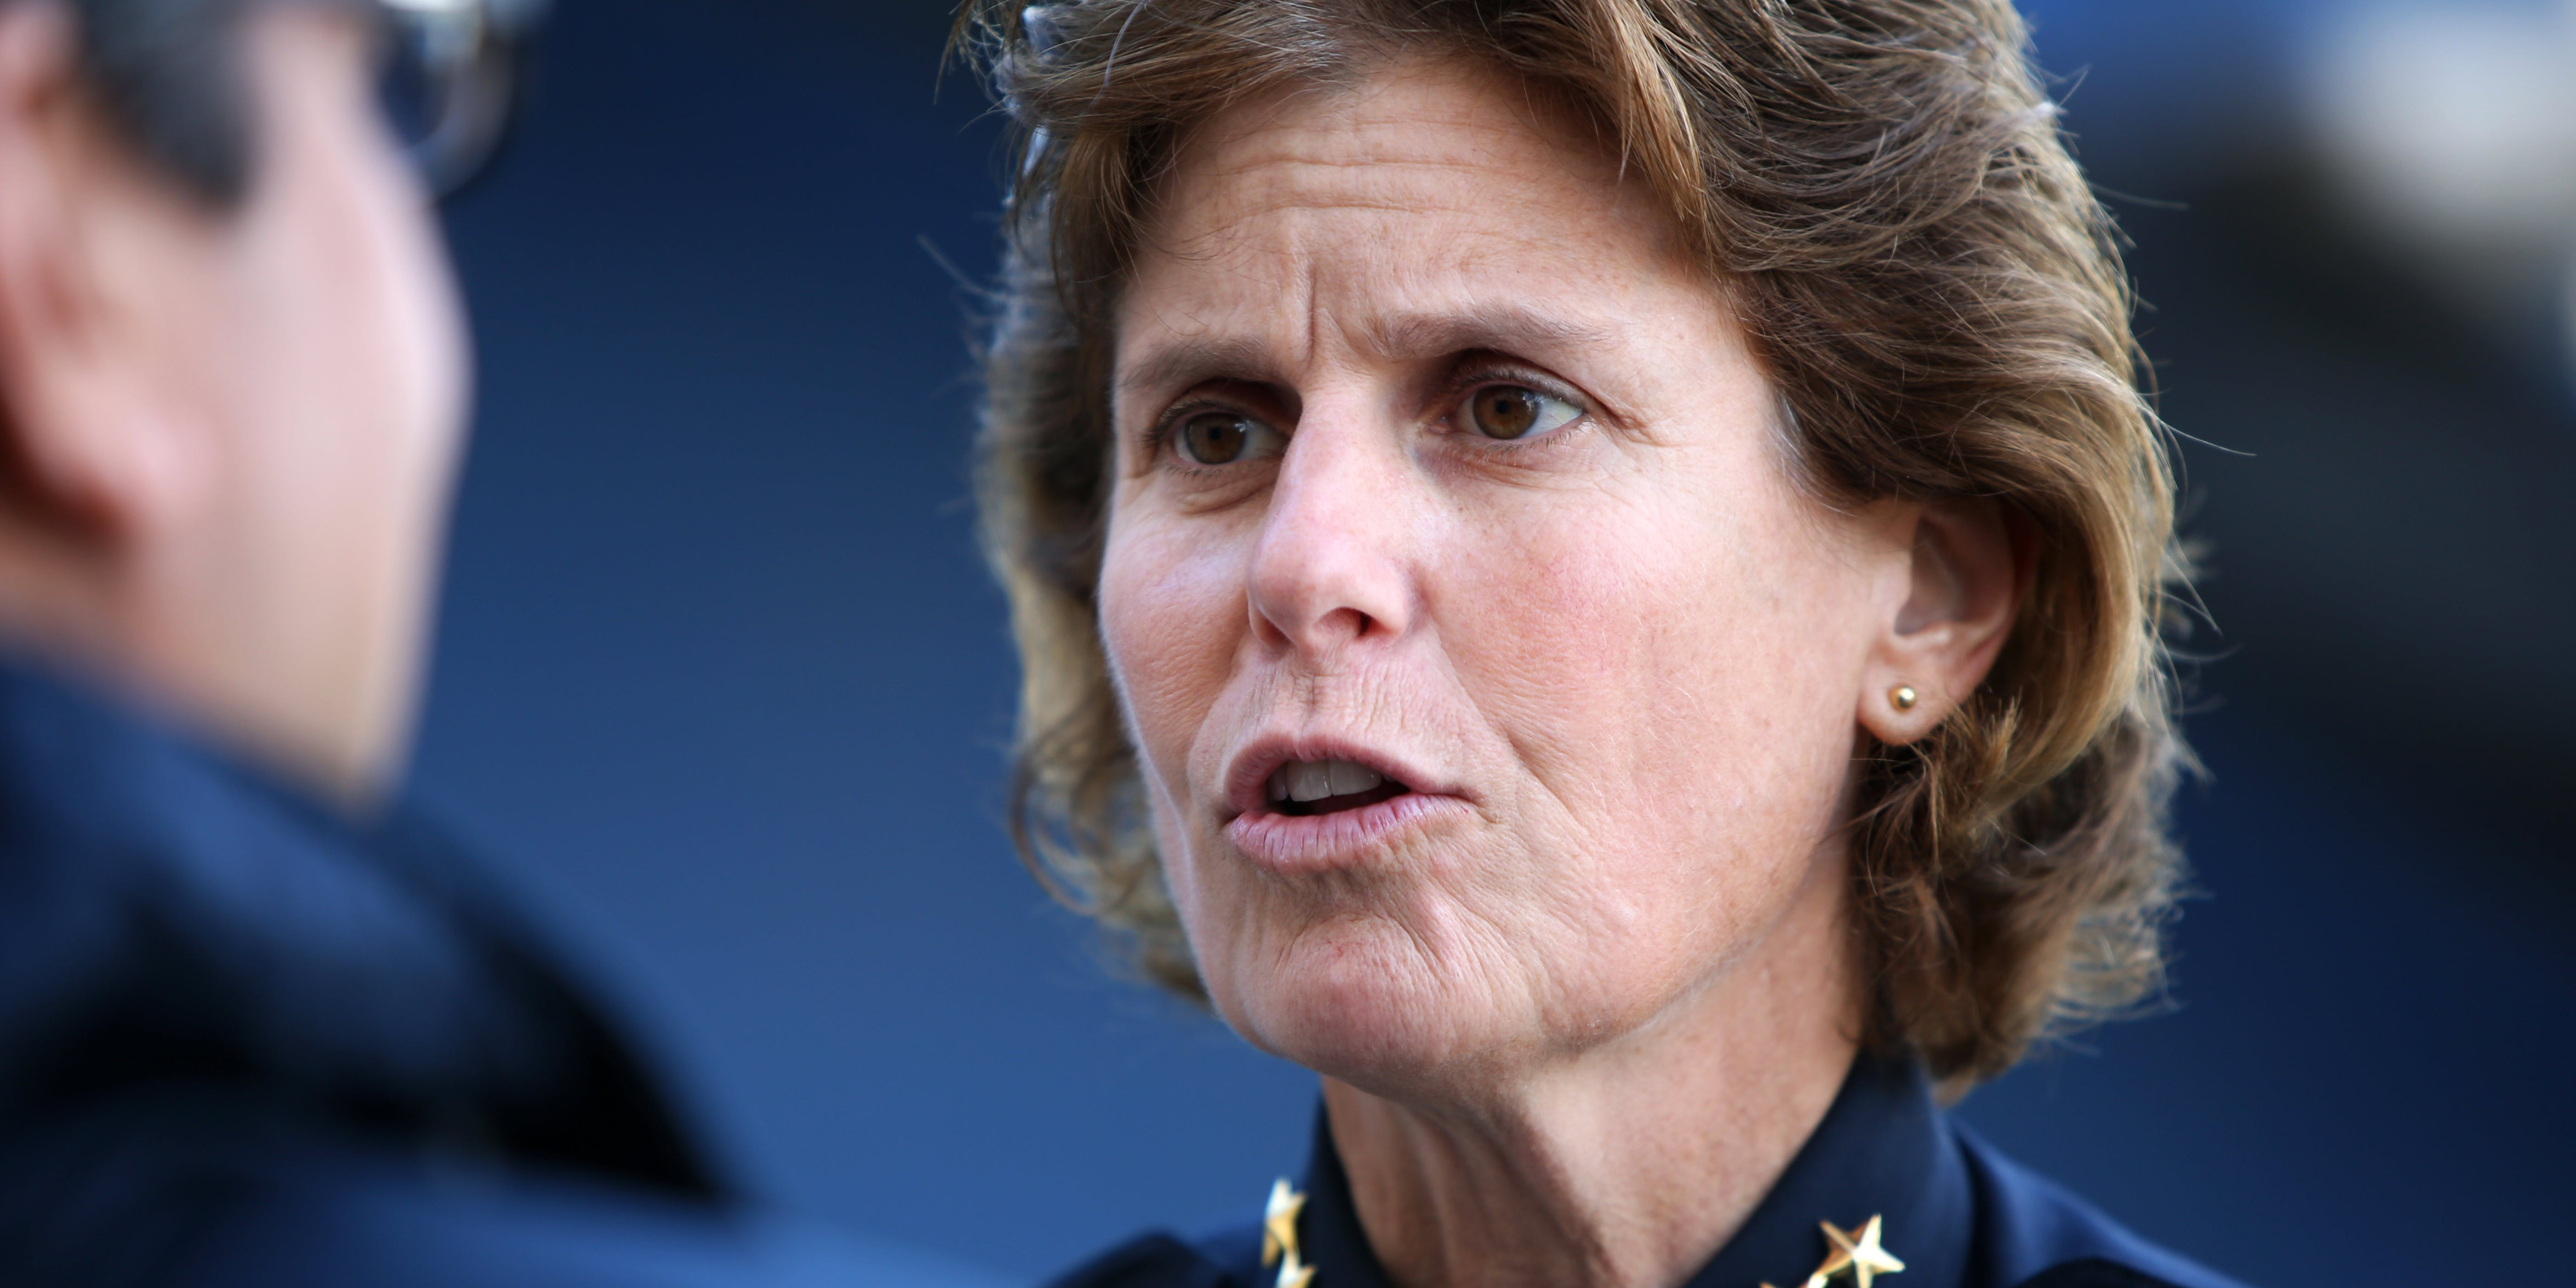 SAN DIEGO, CA, DECEMBER 20, 2014 -- Police Chief Shelley Zimmerman interacts with community at the YMCA in San Diego. (Photo by Irfan Khan/Los Angeles Times via Getty Images)